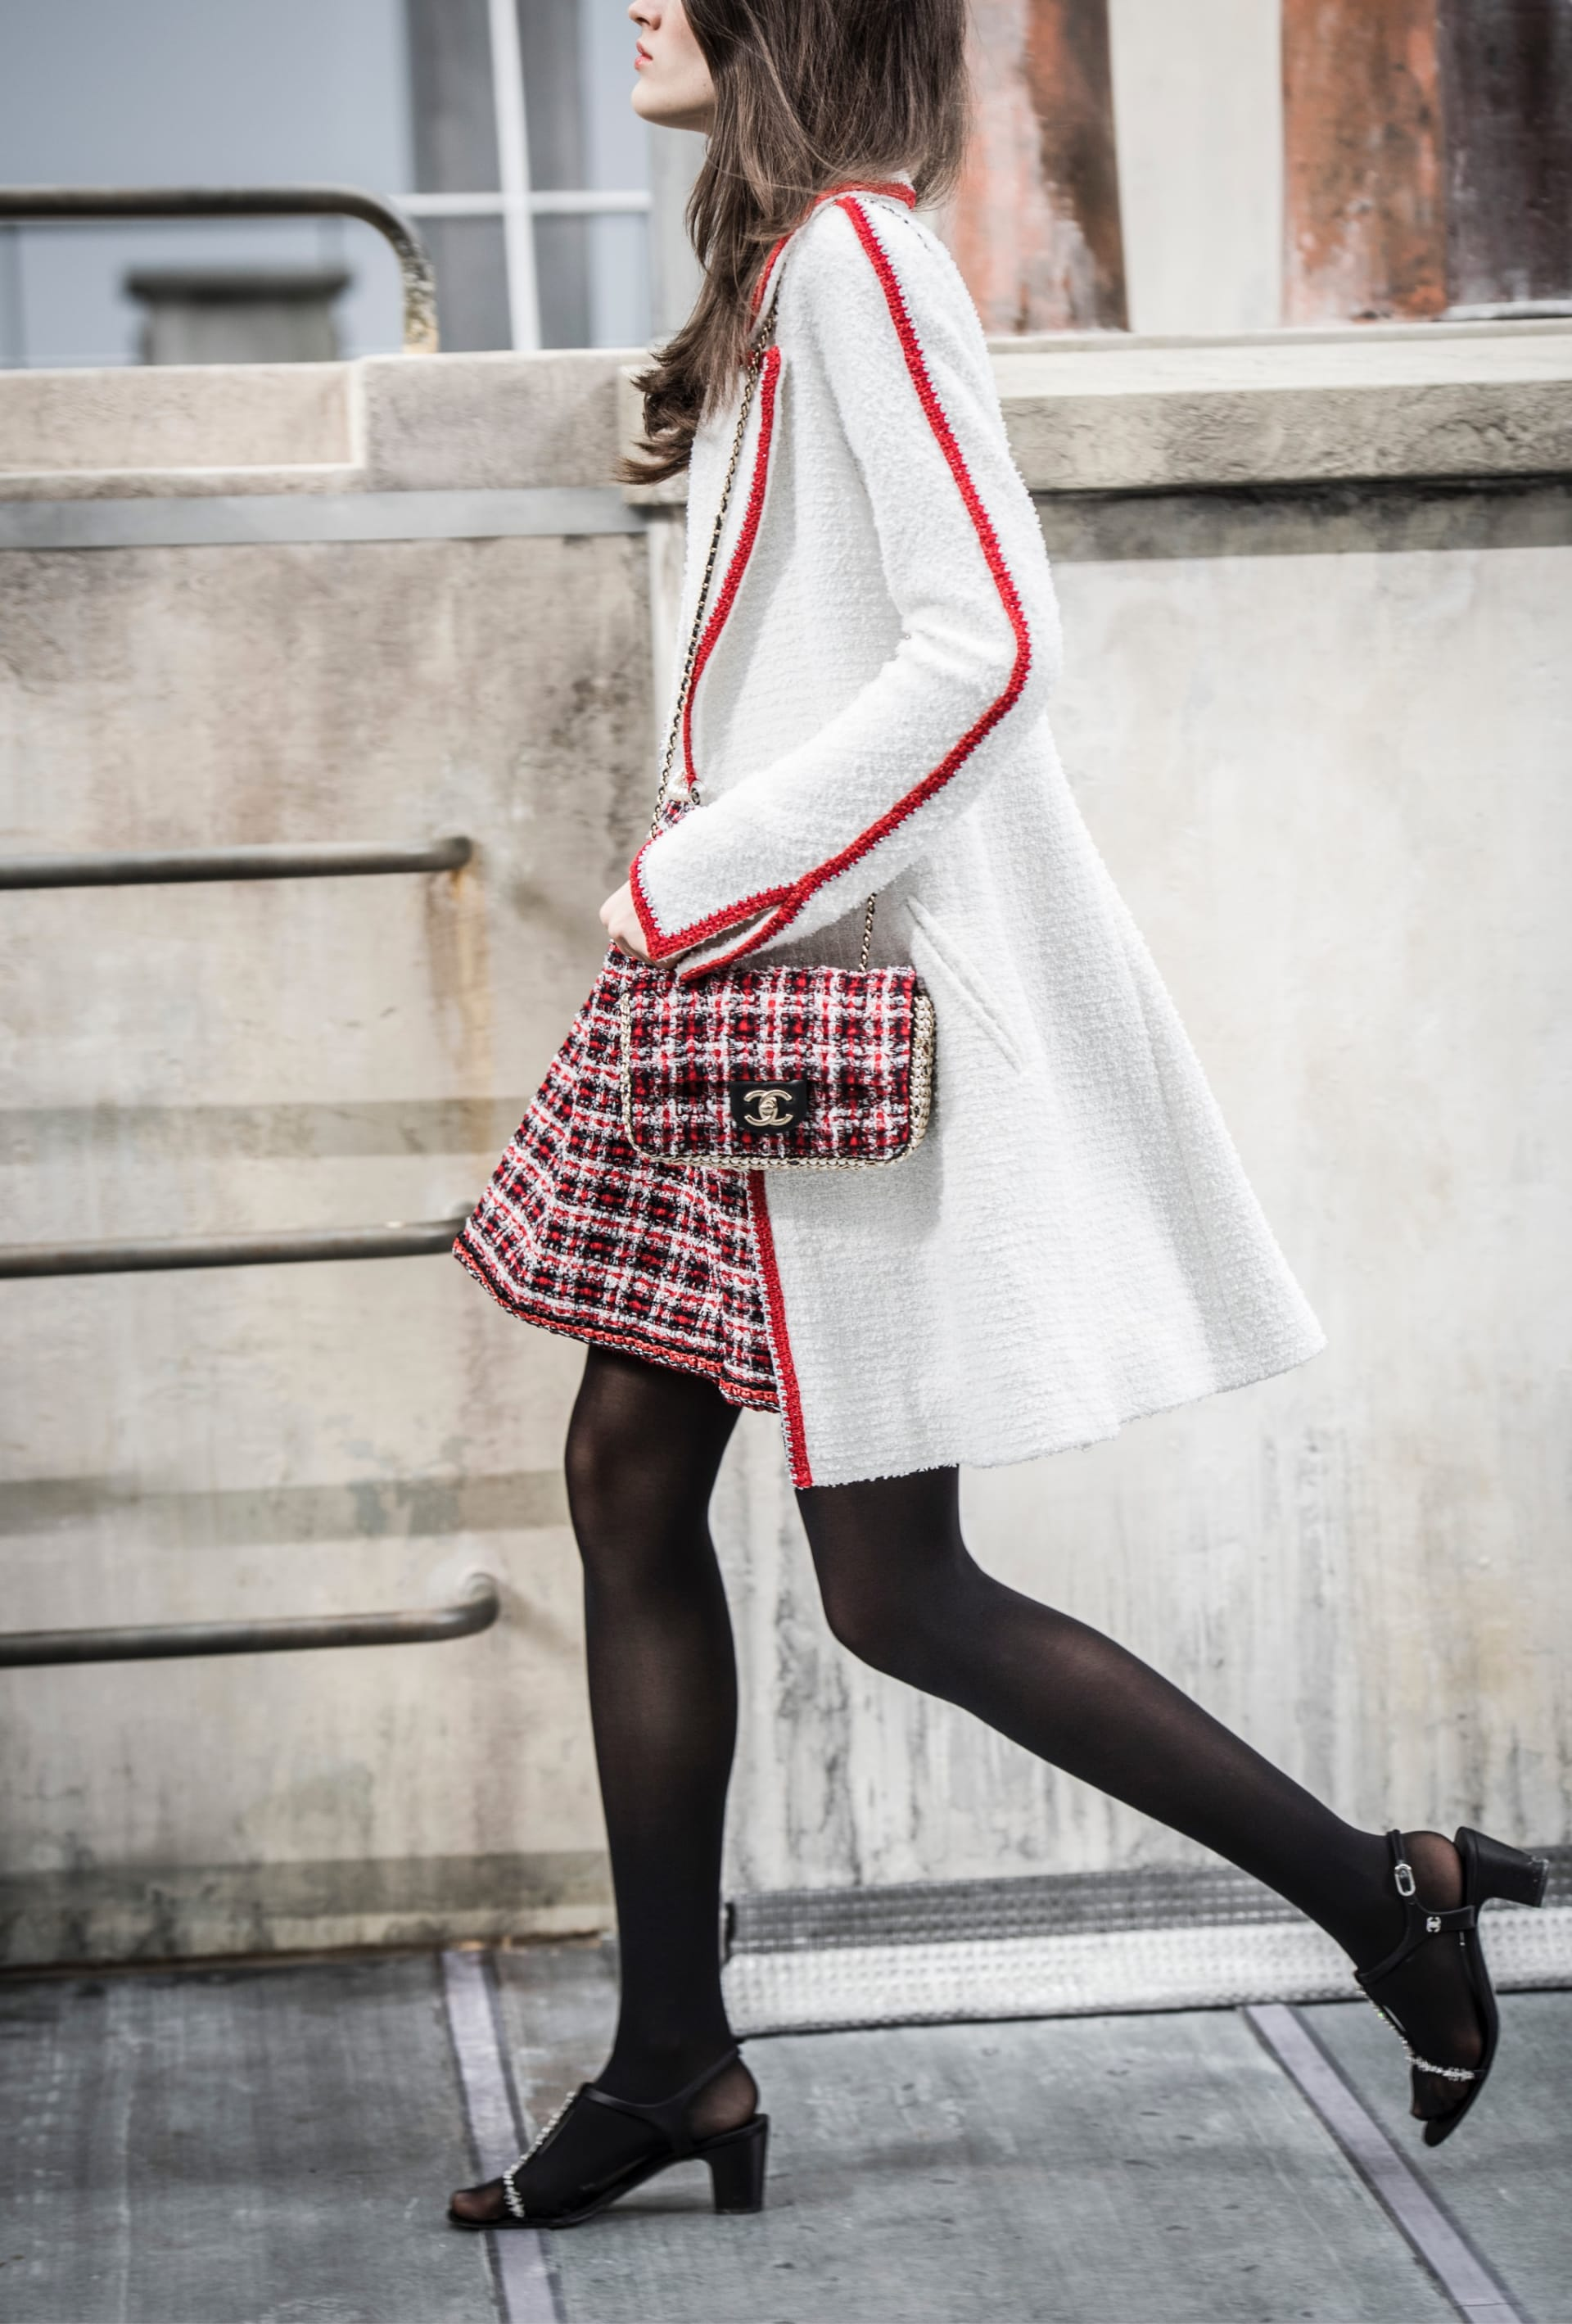 Additional image 3 - Look  25 -  - Spring-Summer 2020